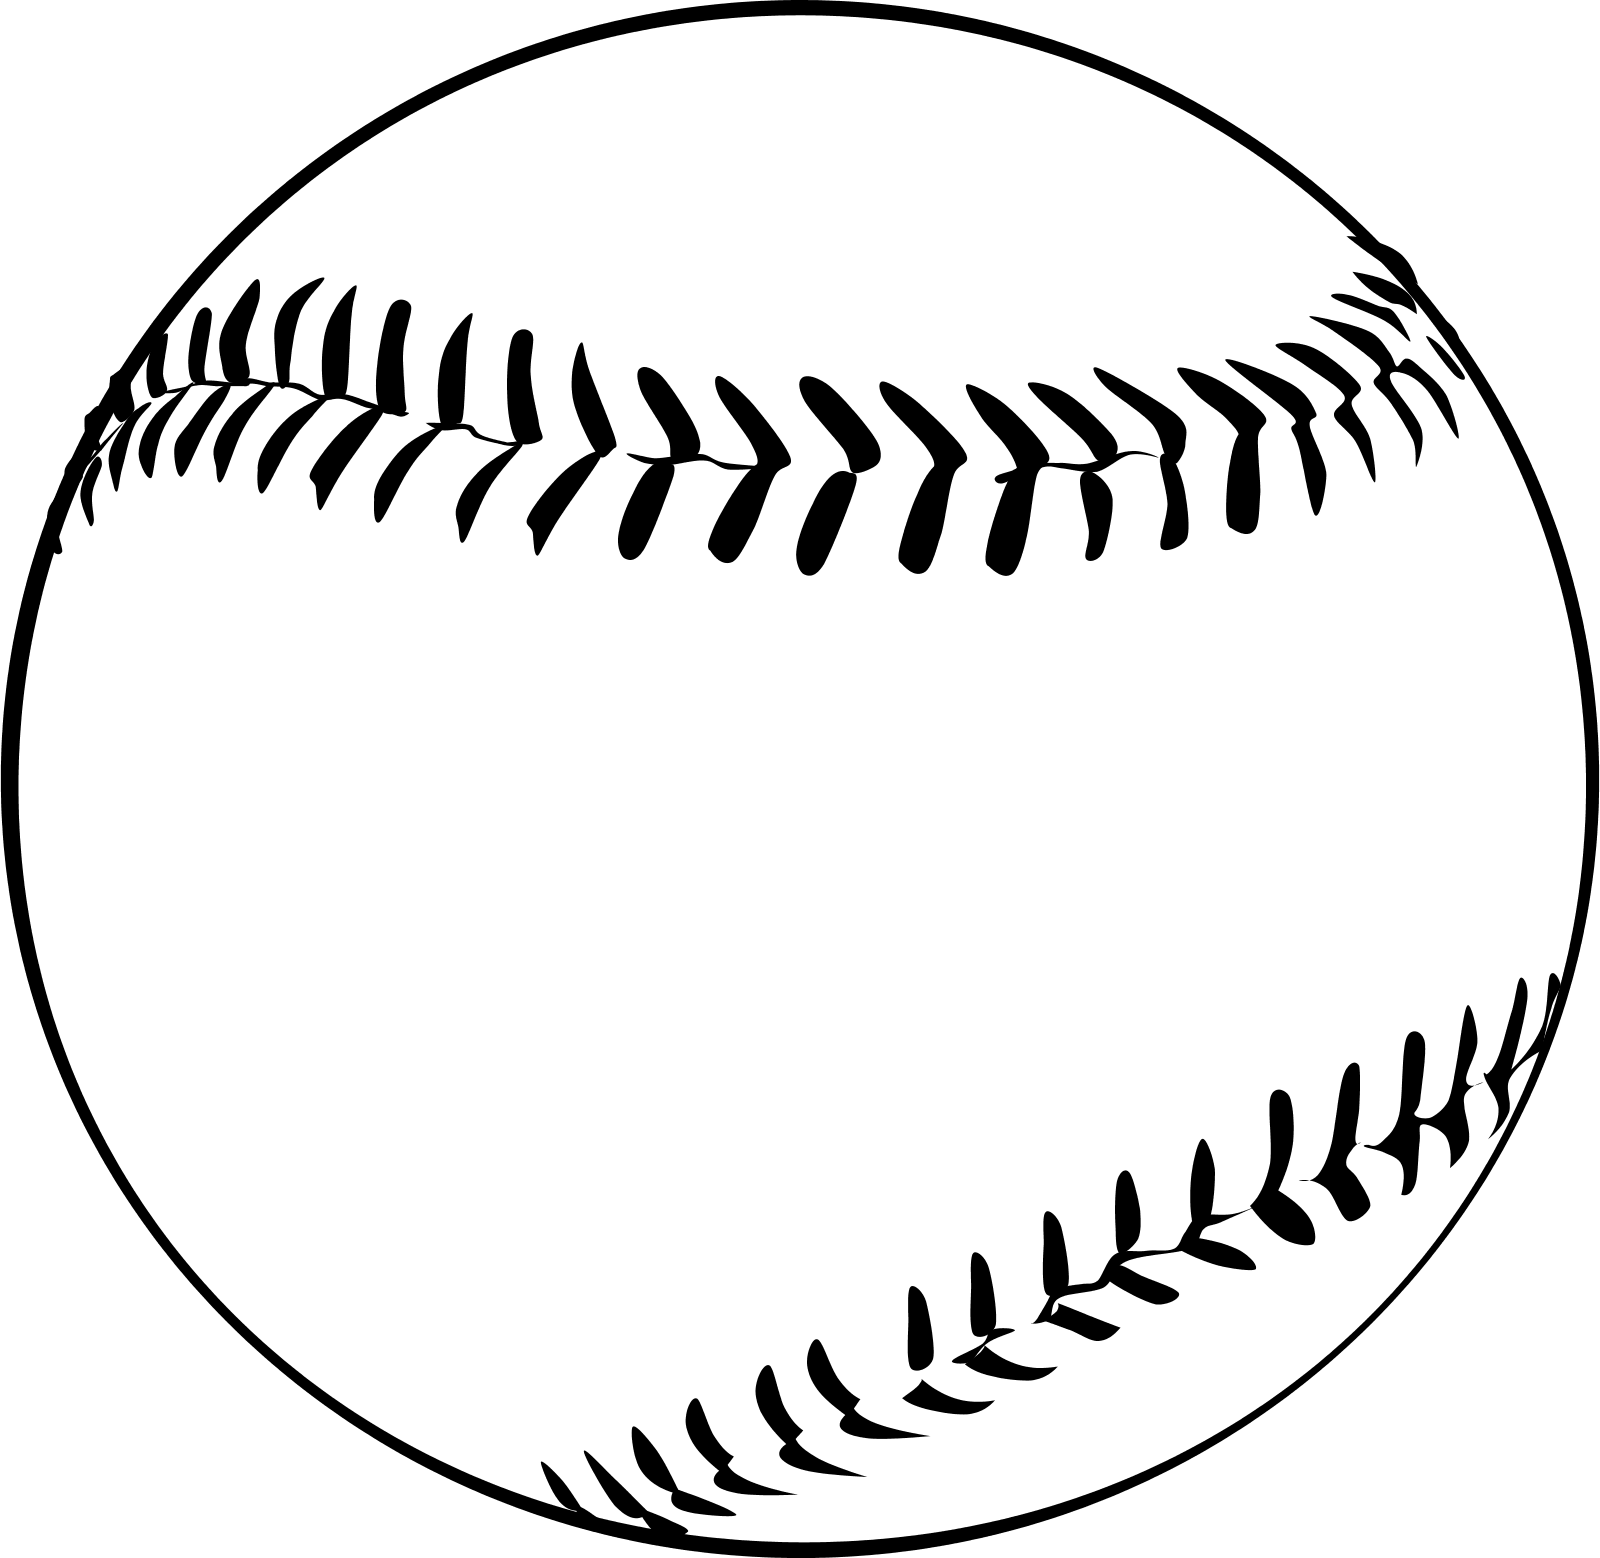 Baseball 20clipart | Clipart Panda - Free Clipart Images